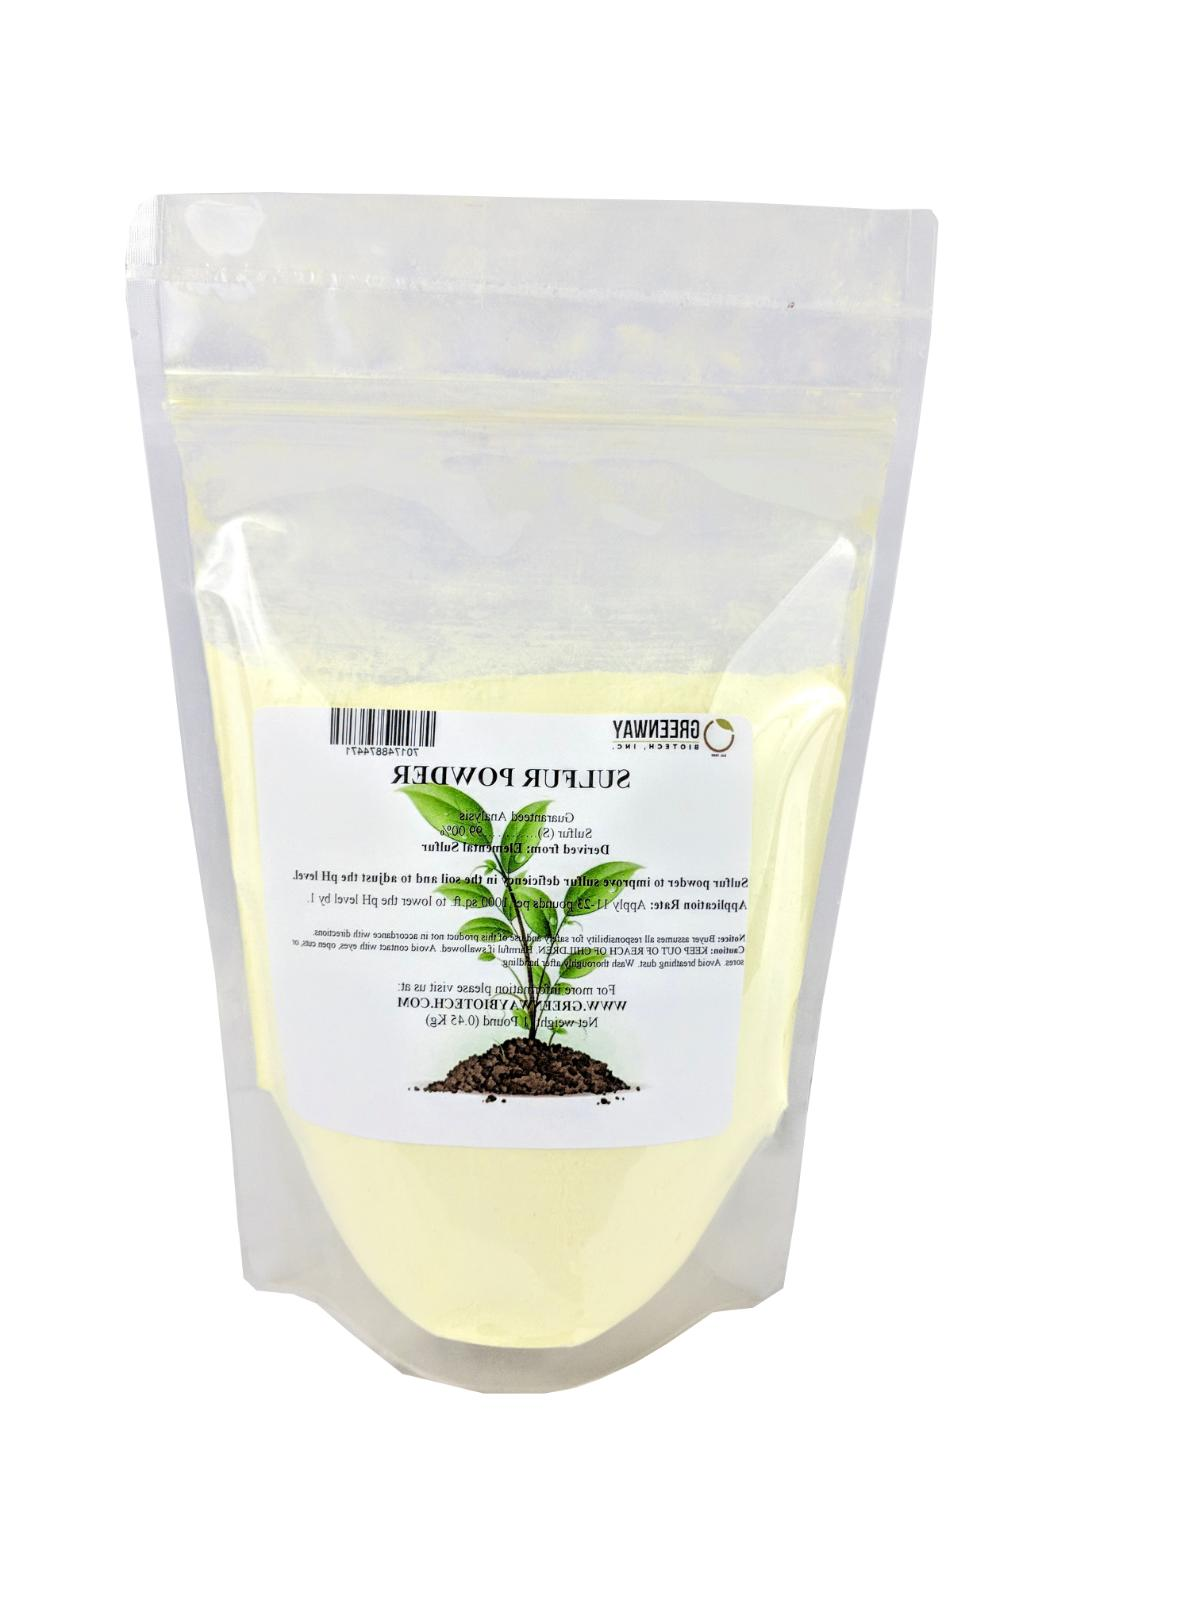 "Yellow Sulfur Powder""Greenway Biotech Brand"" 1 Pound"